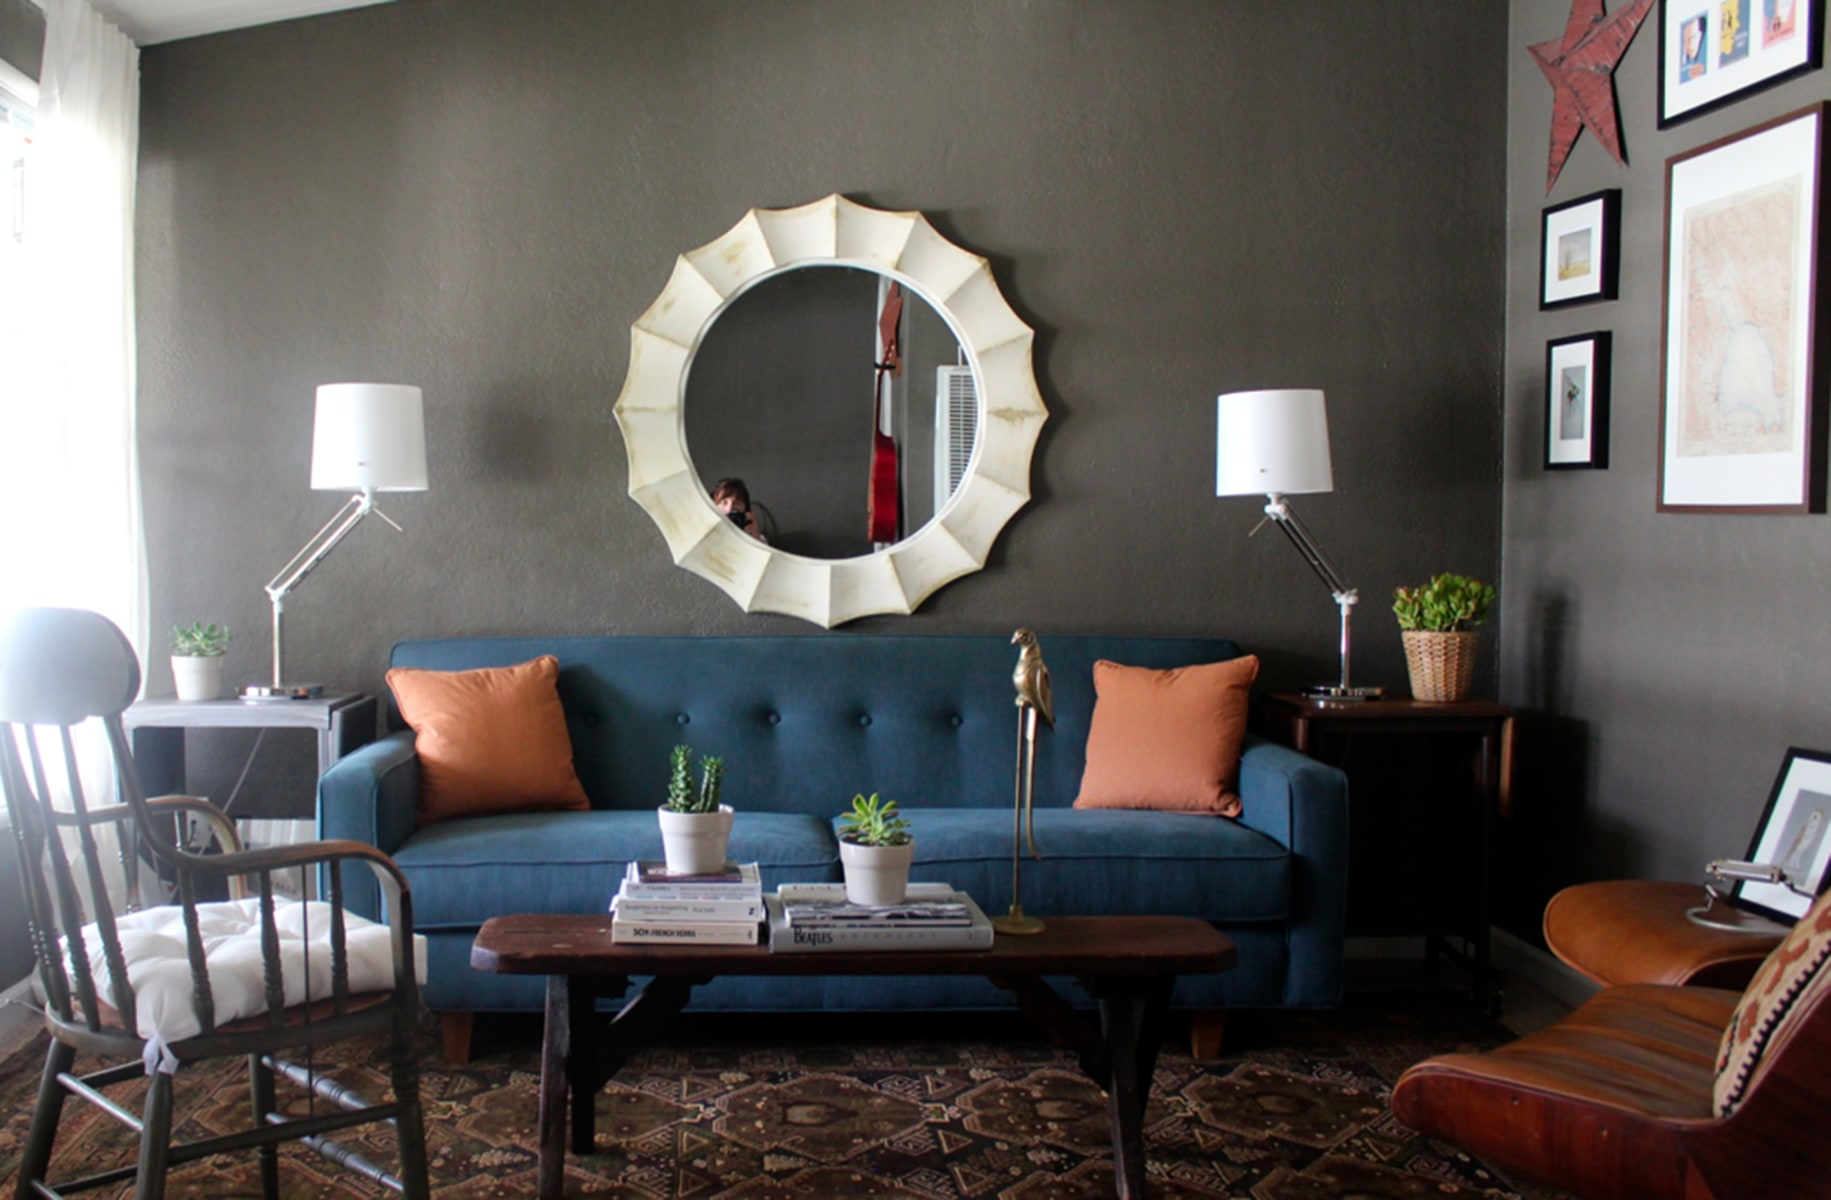 Interior decorating before and after photos - Homes